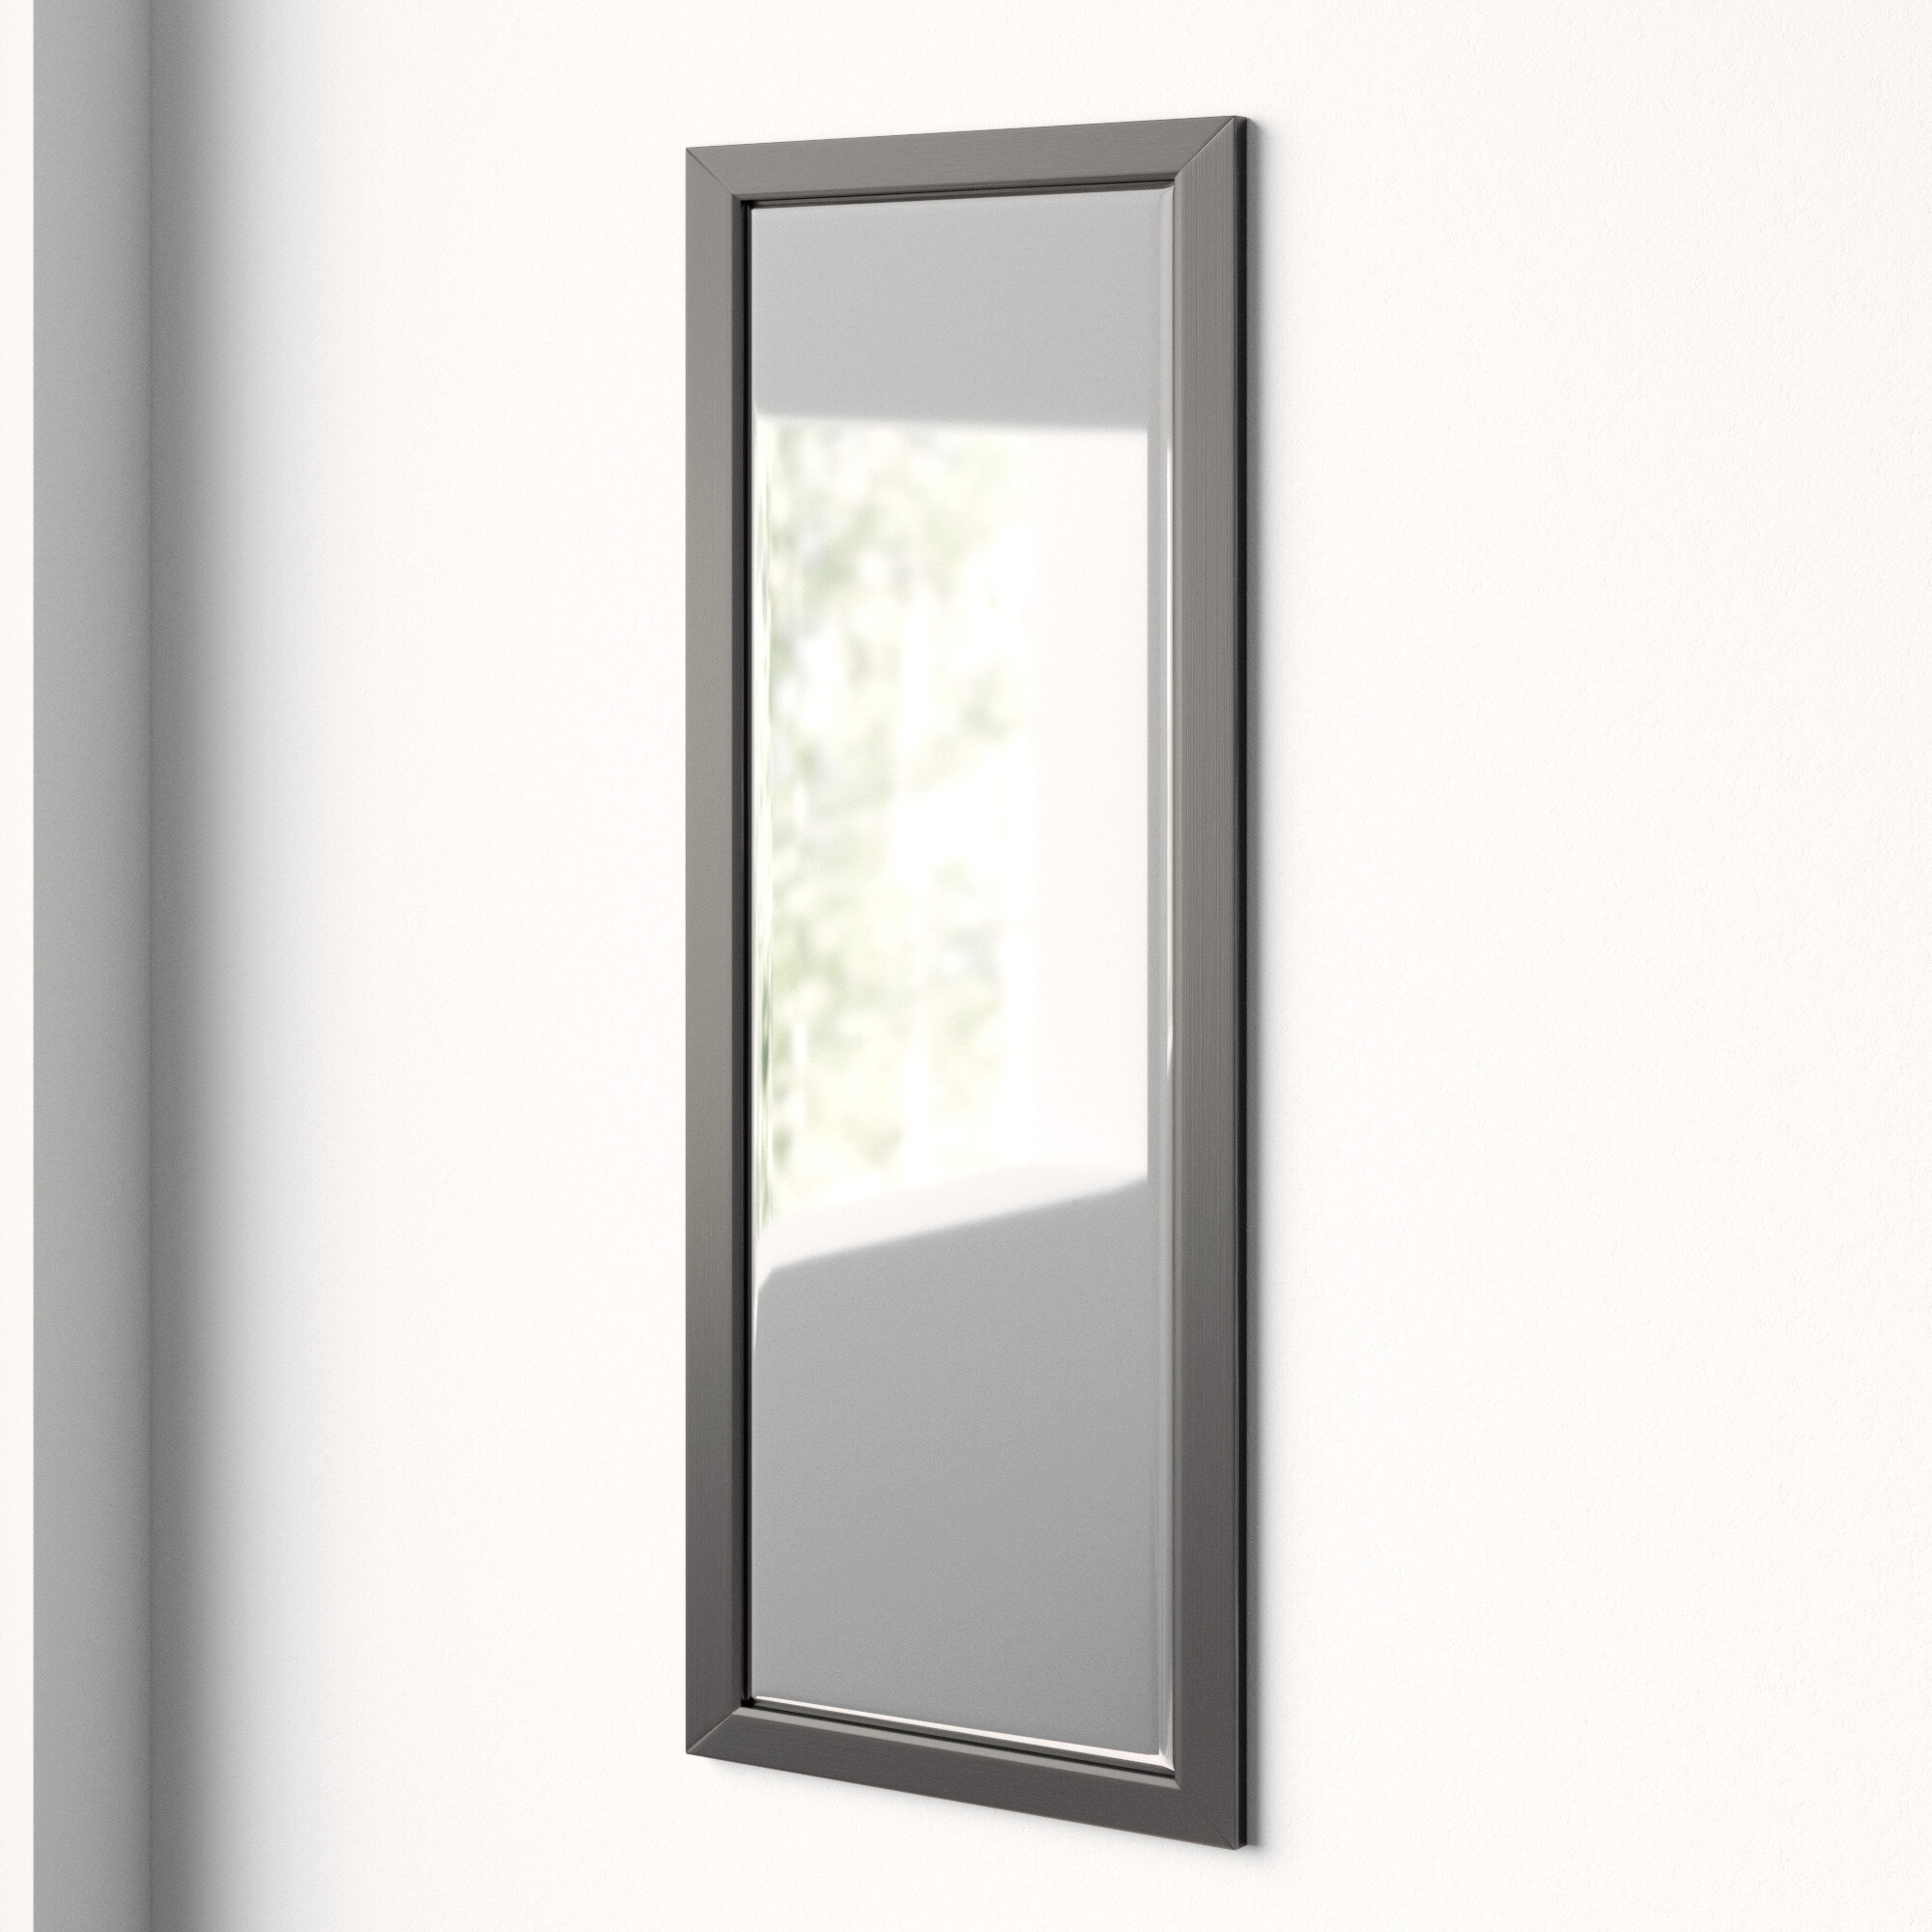 Edge Minimal Modern & Contemporary Full Length Body Mirror Within Modern & Contemporary Beveled Accent Mirrors (Gallery 11 of 30)